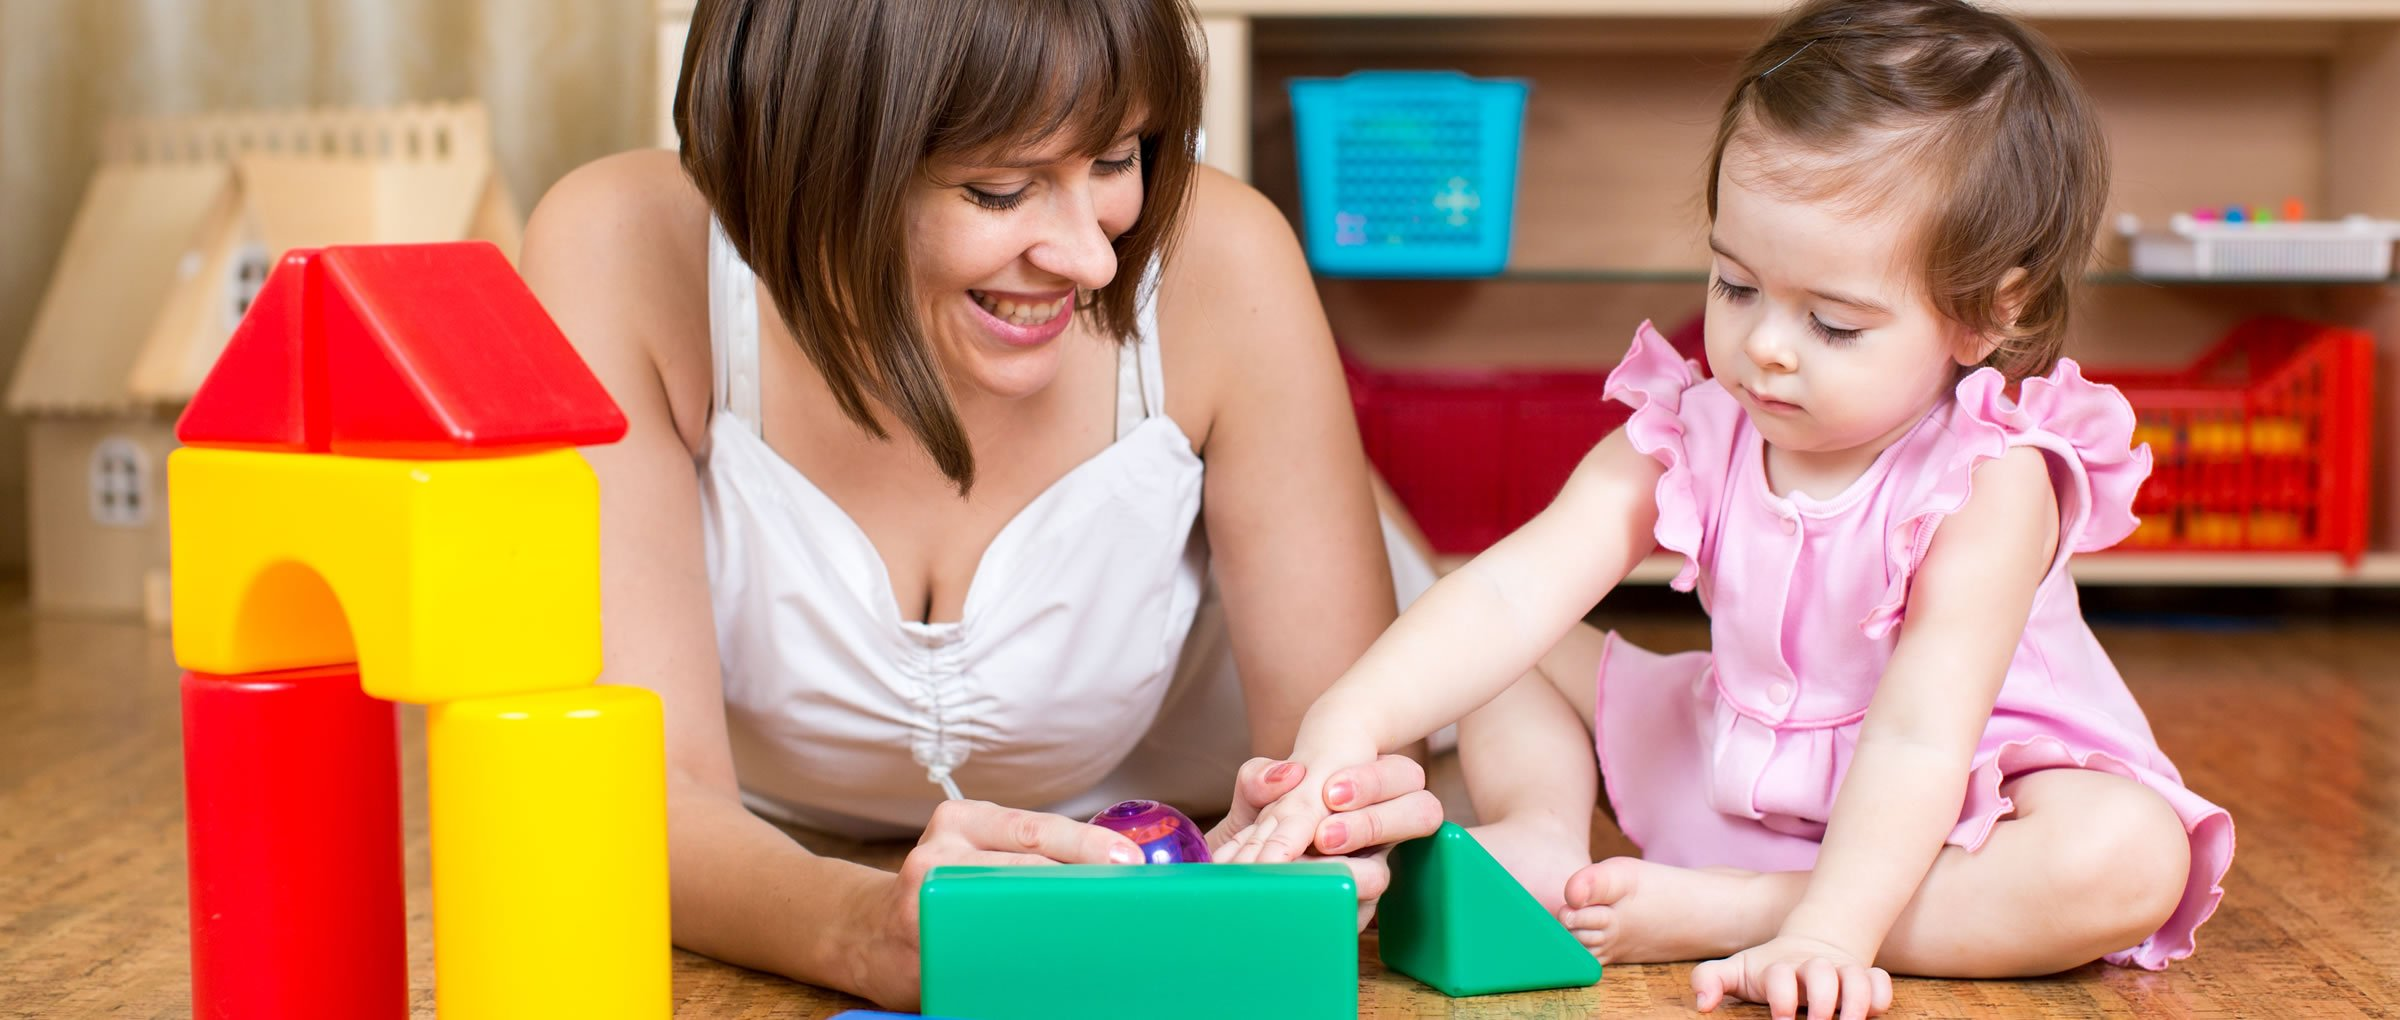 Early childhood intervention activities by 6-12 months age